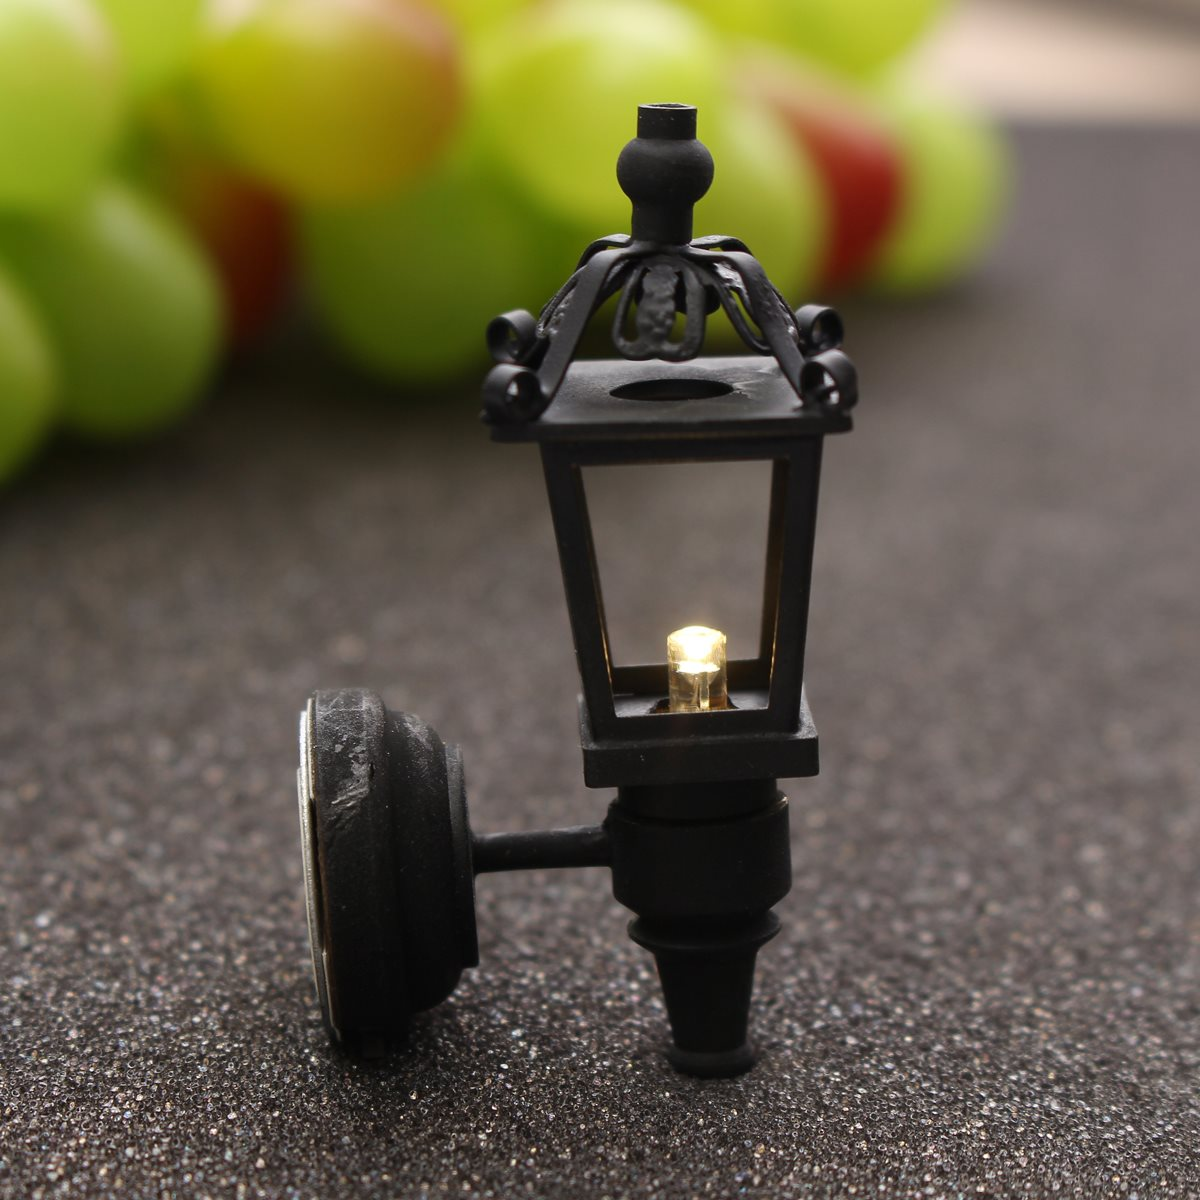 Miniatura Streetlight LED Electronic Products Landscape For Doll House Accessories Simulation Street Lamps DIY Decor font